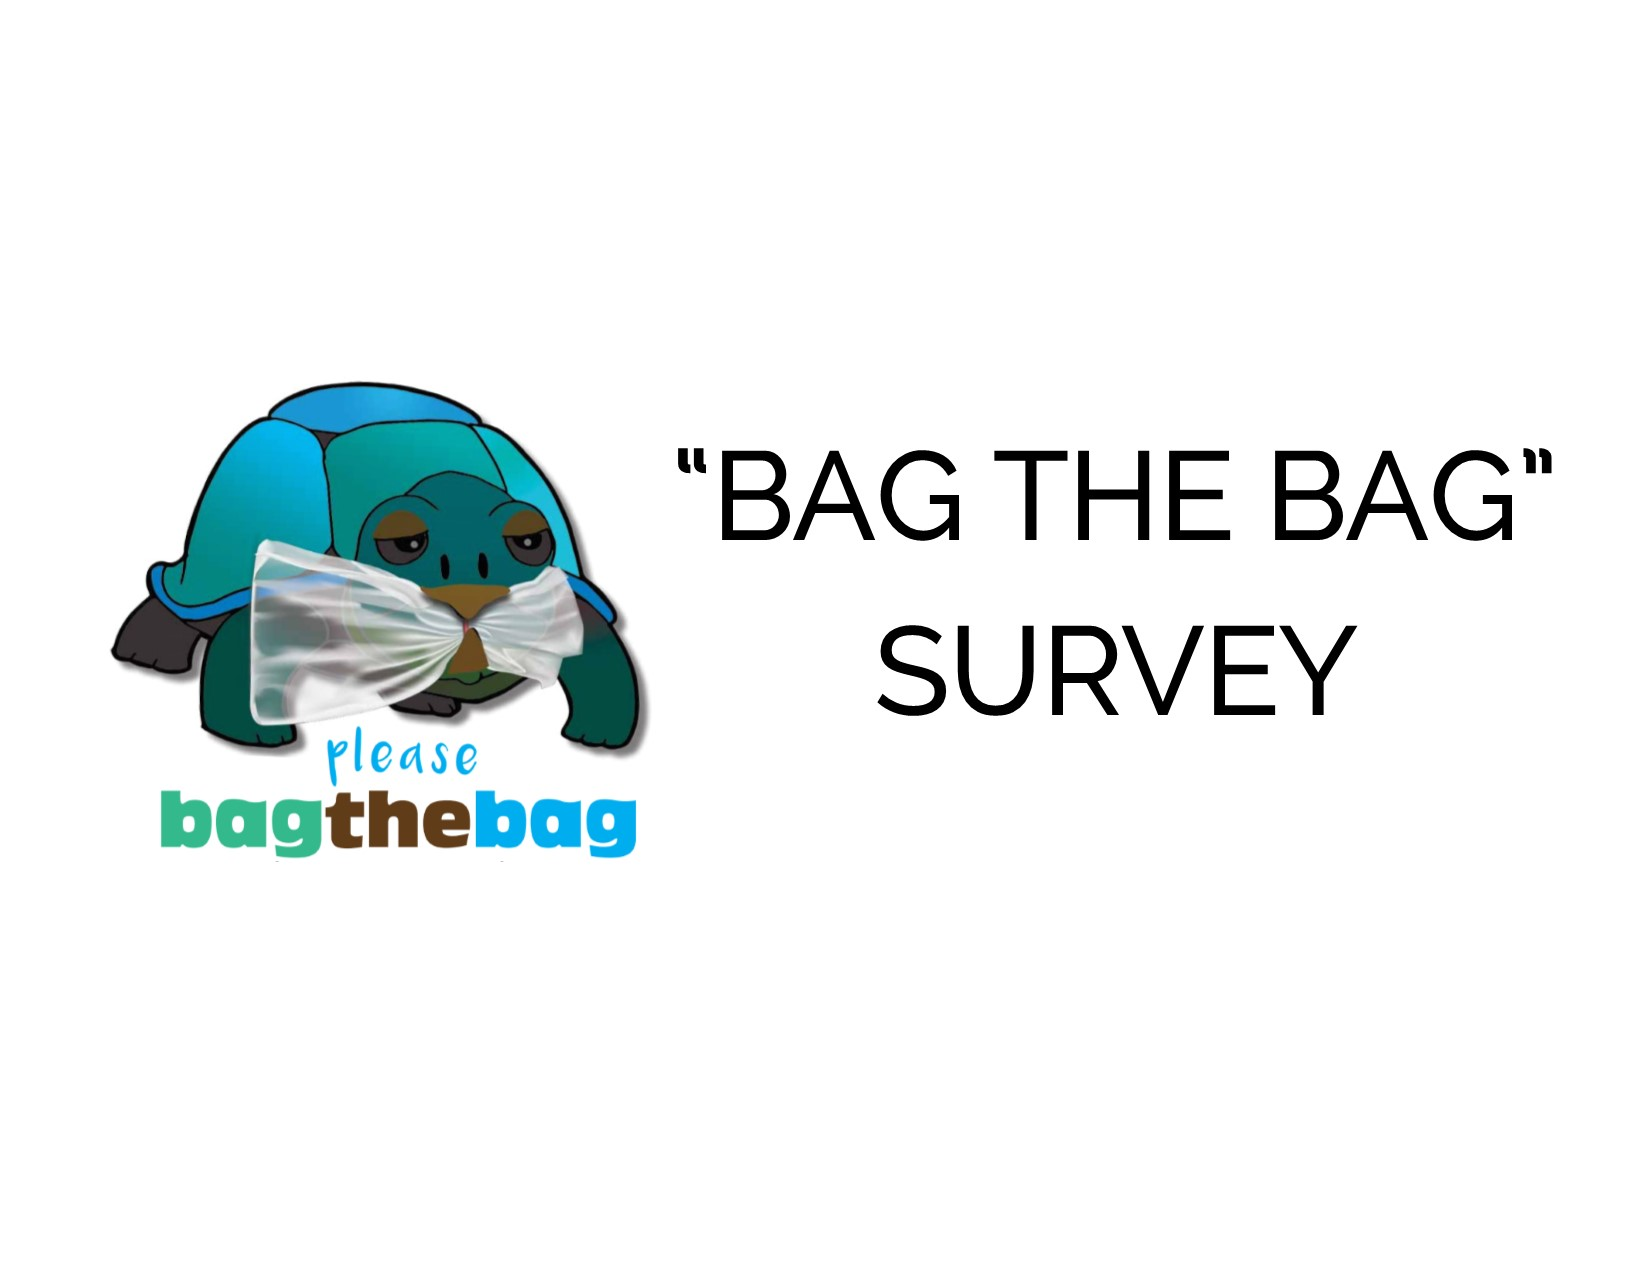 Bag The Bag Survey